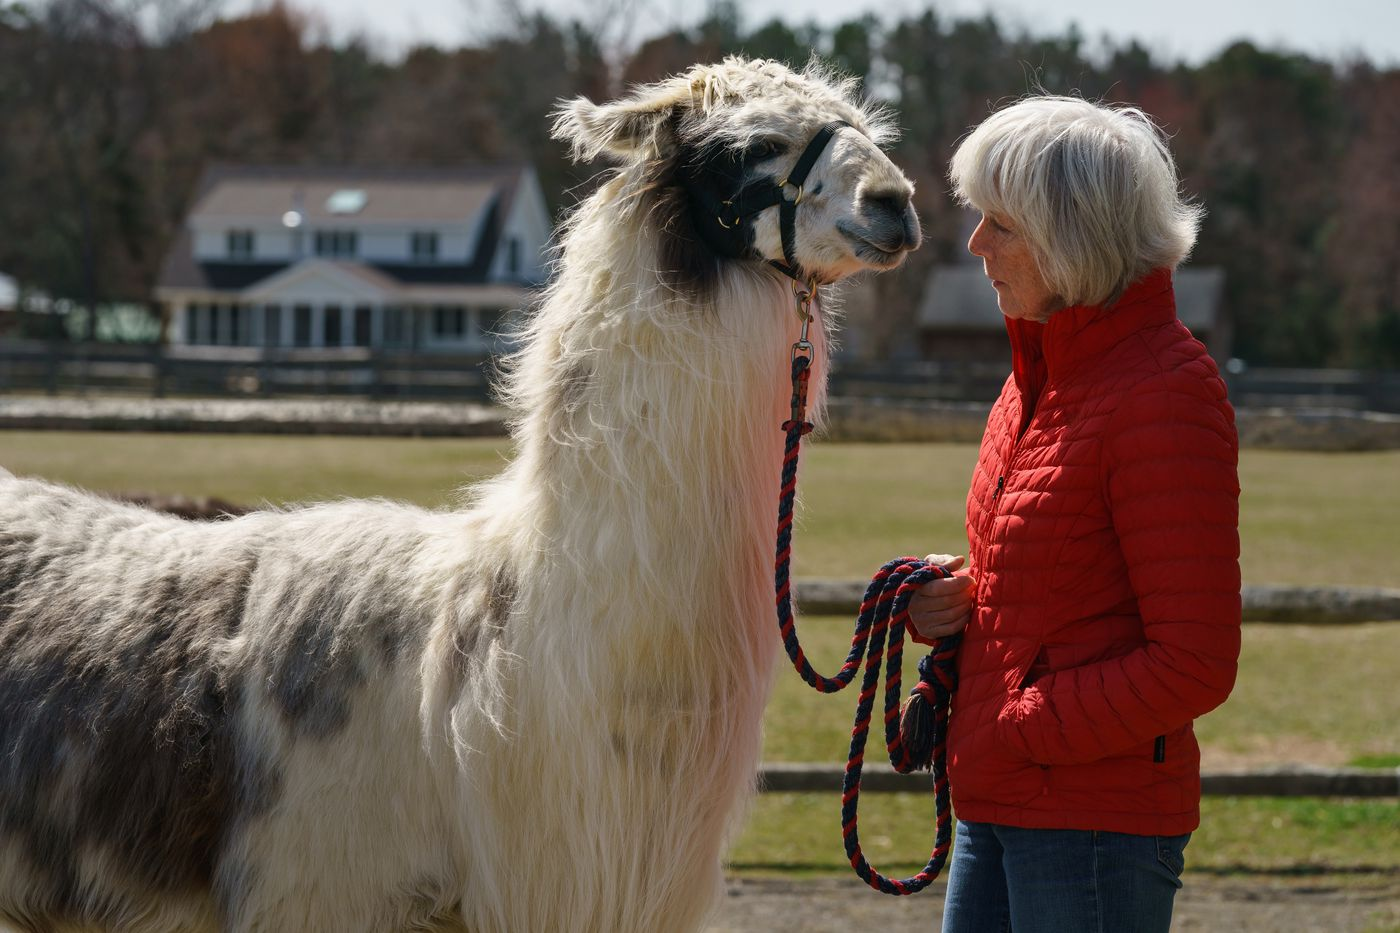 Better than a spa day': I took a walk with a llama and found inner